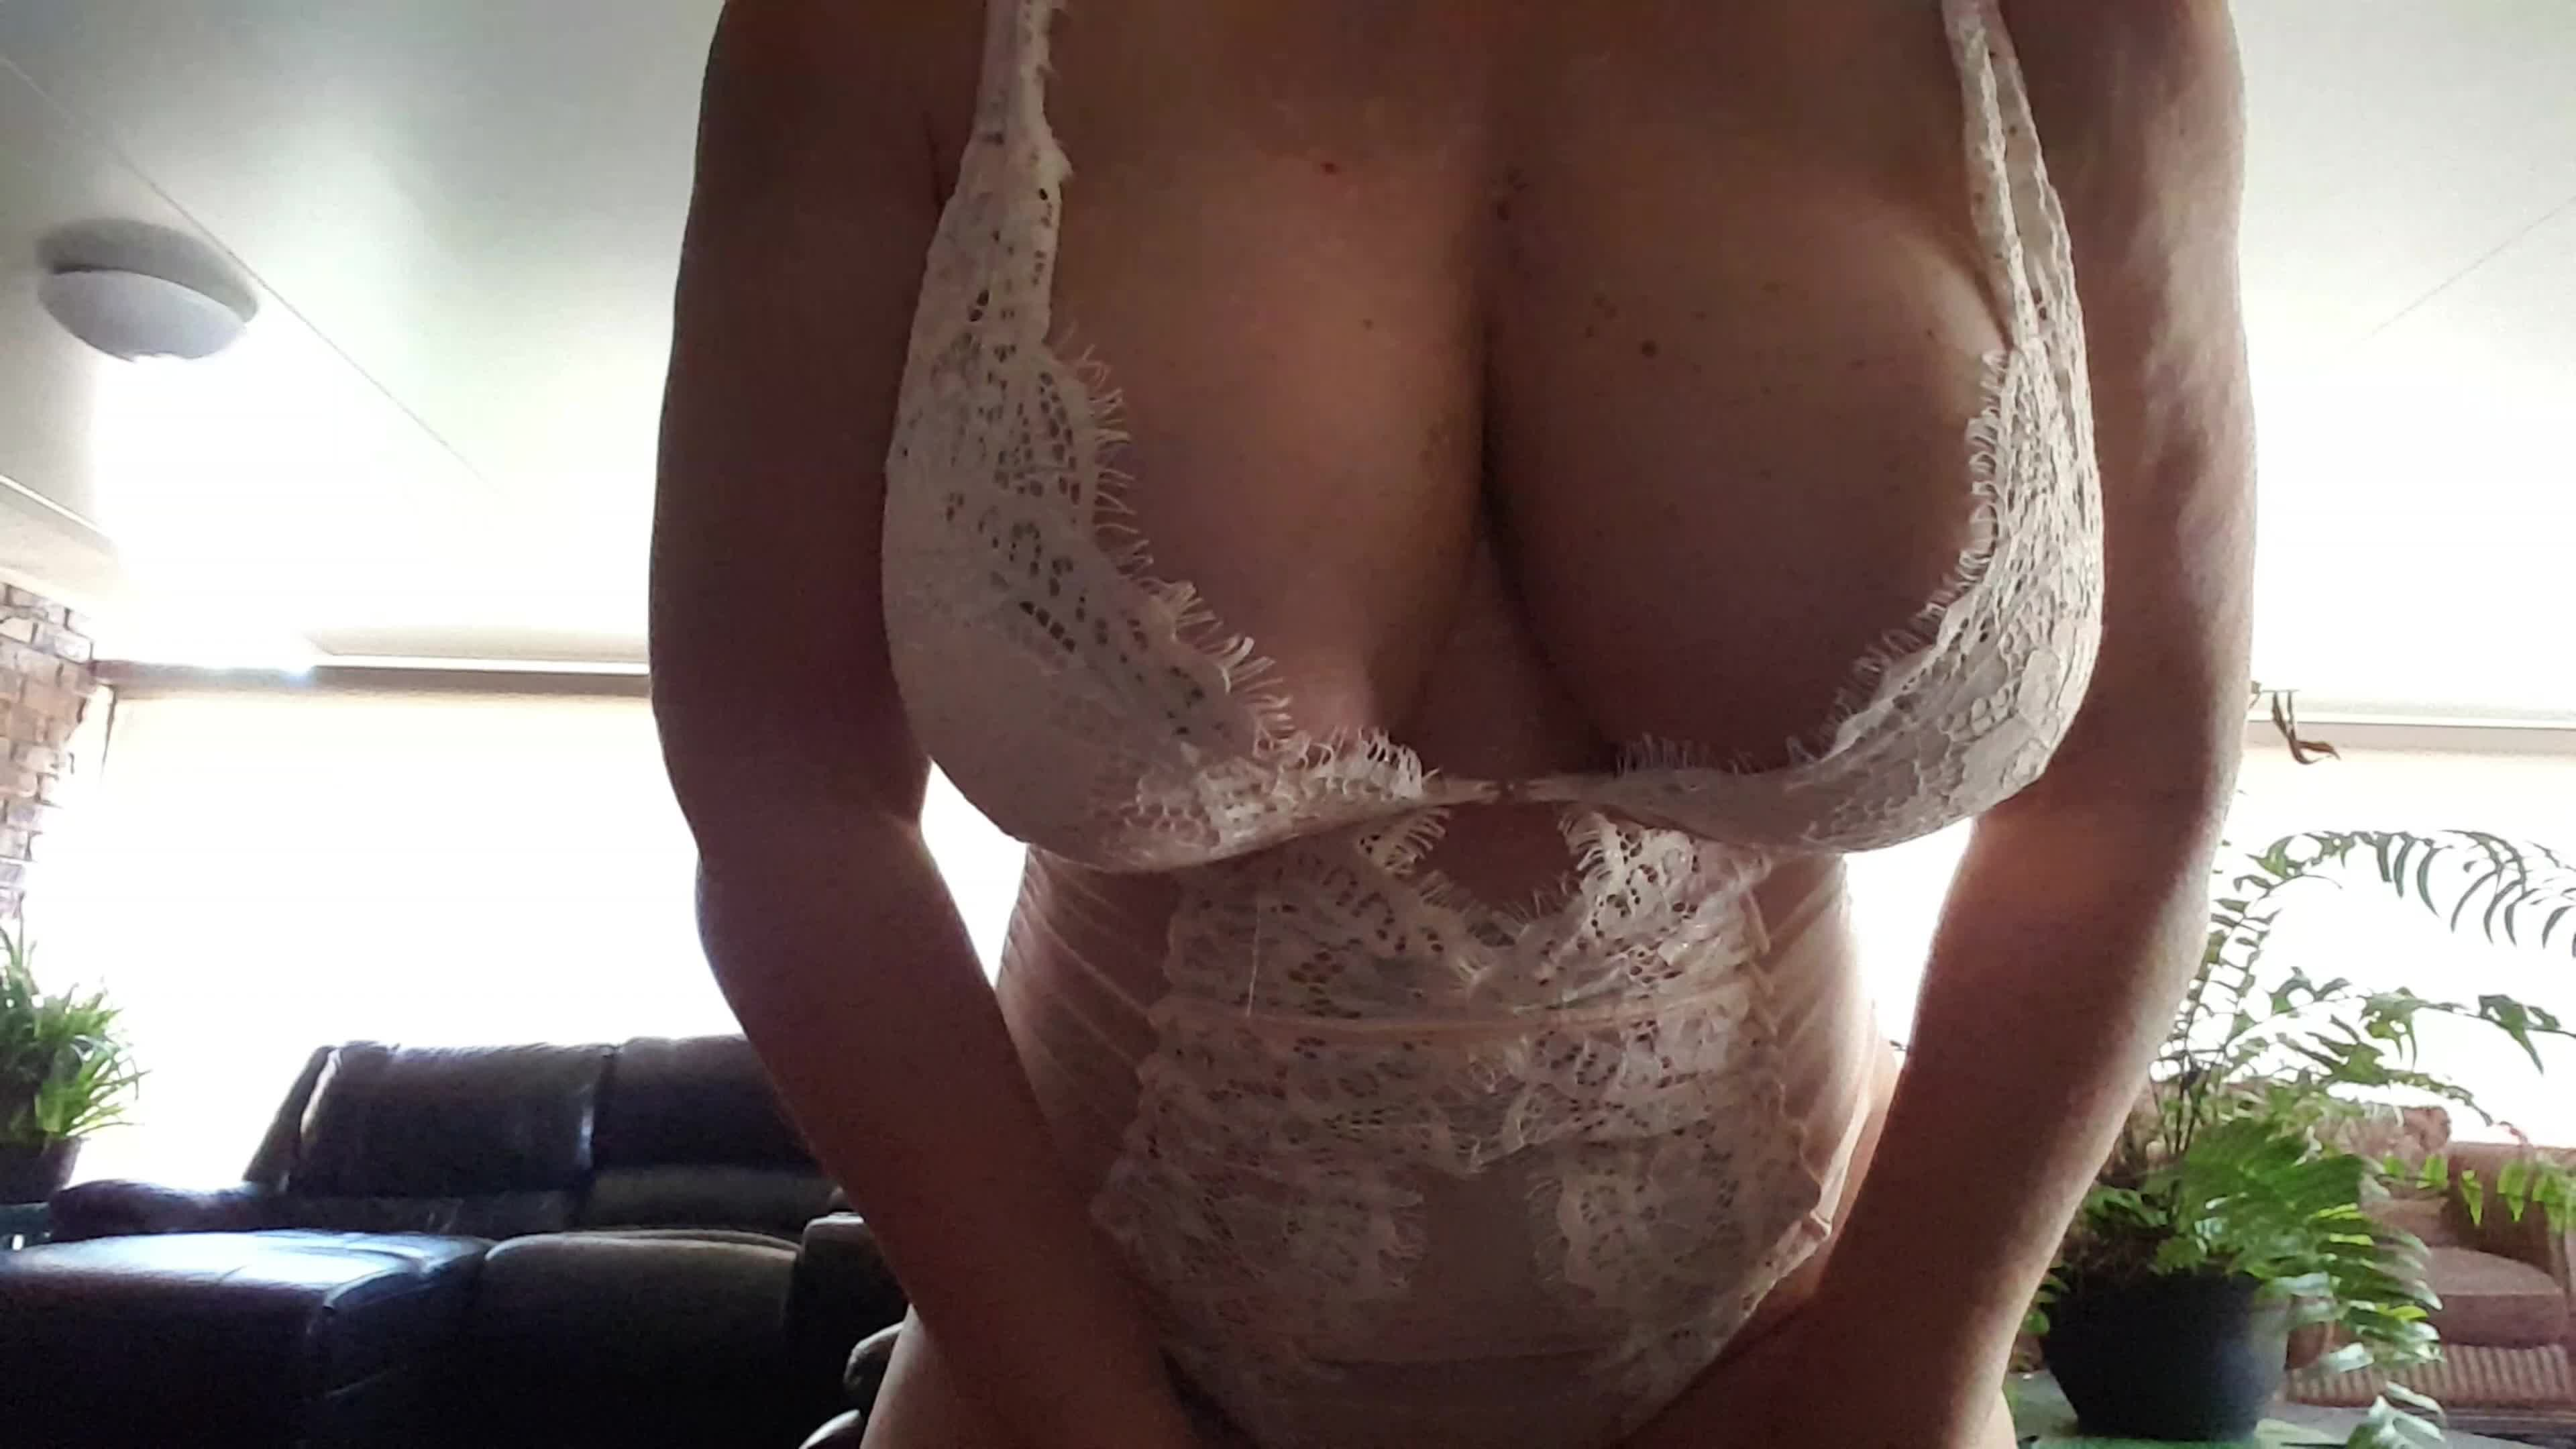 Getting my boobs out this morning in one of my favorite pieces of lingerie ❤ xx 54yo 🇦🇺